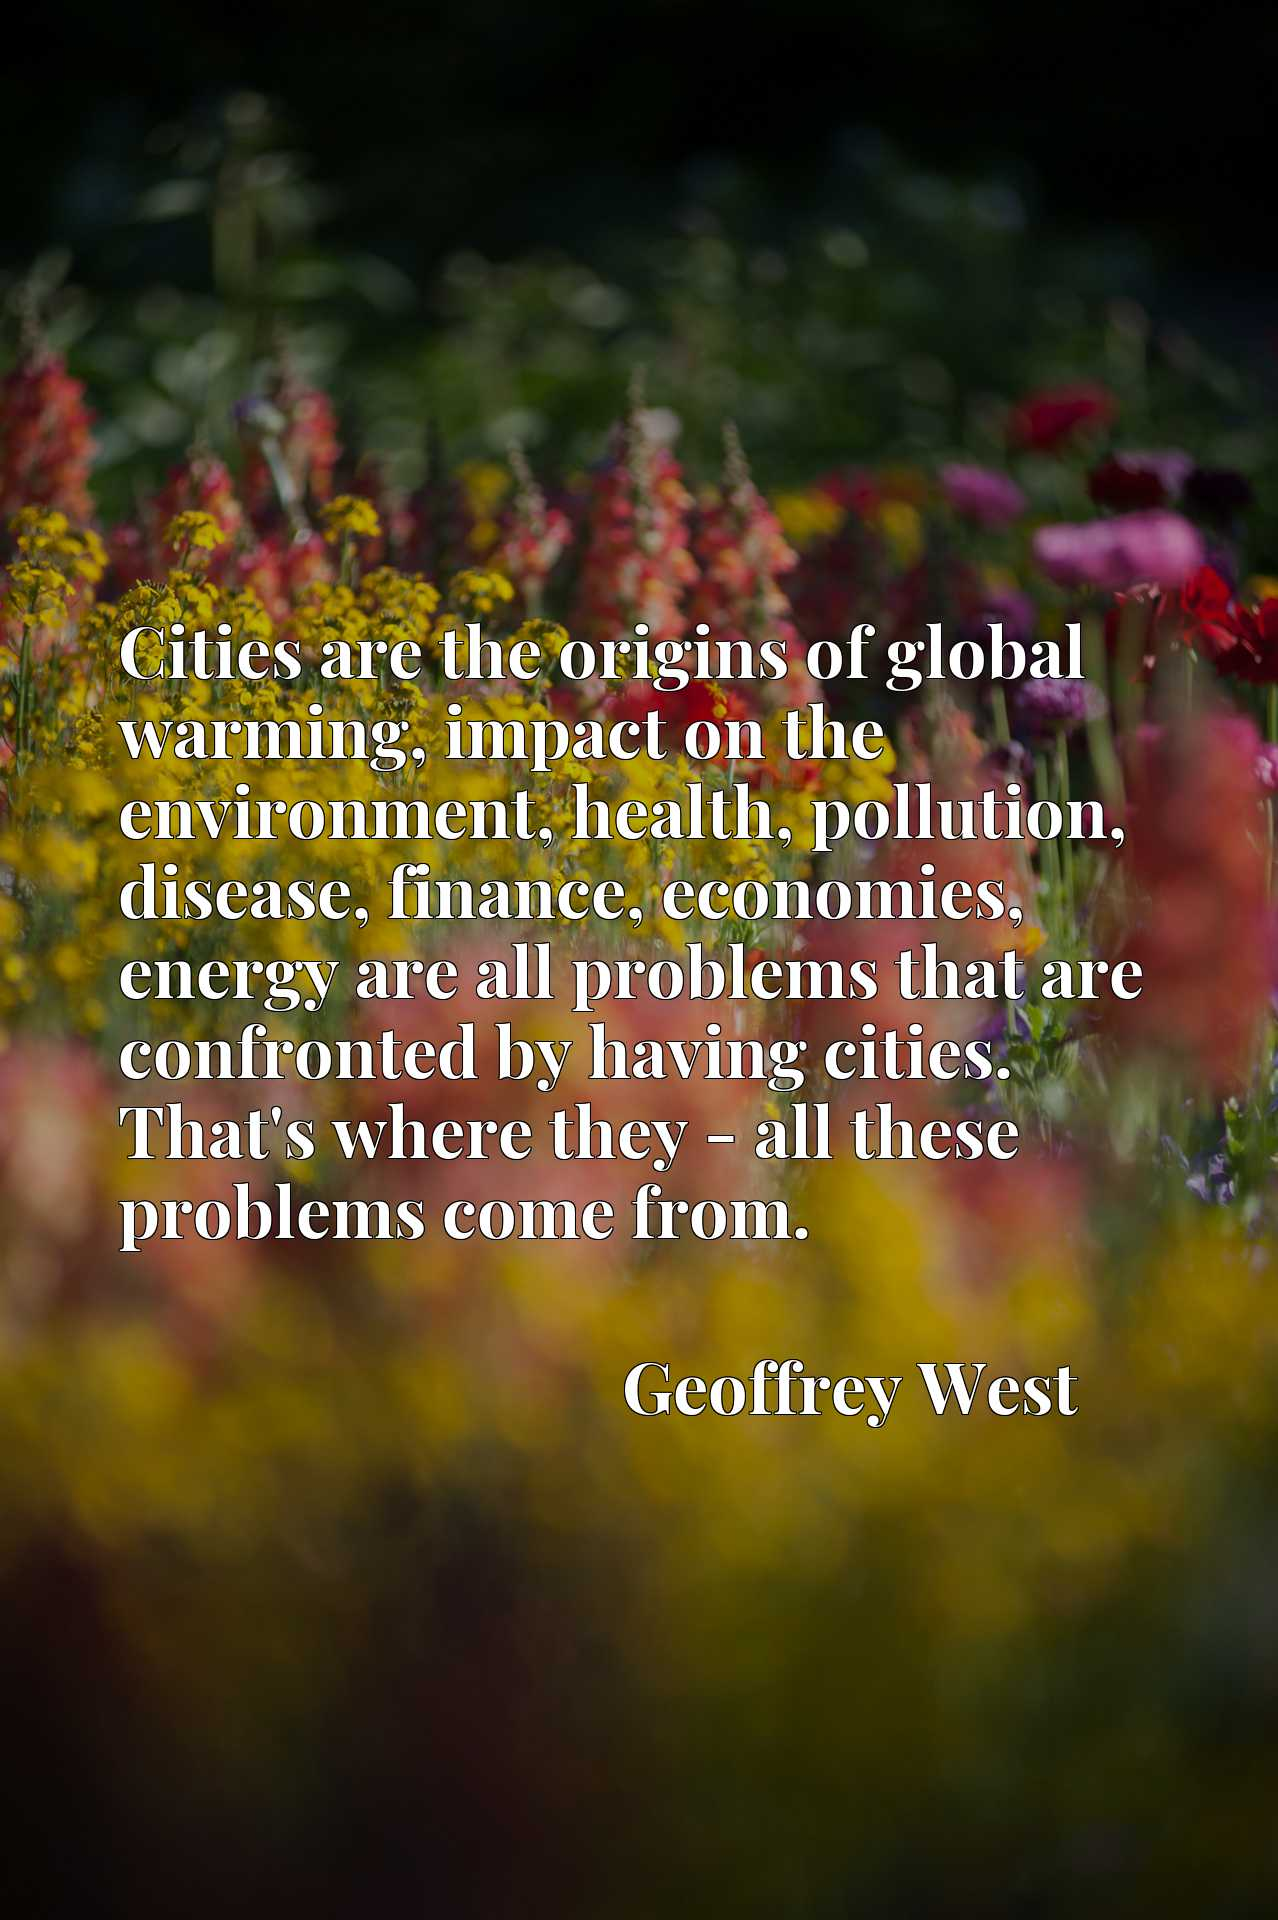 Cities are the origins of global warming, impact on the environment, health, pollution, disease, finance, economies, energy are all problems that are confronted by having cities. That's where they - all these problems come from.